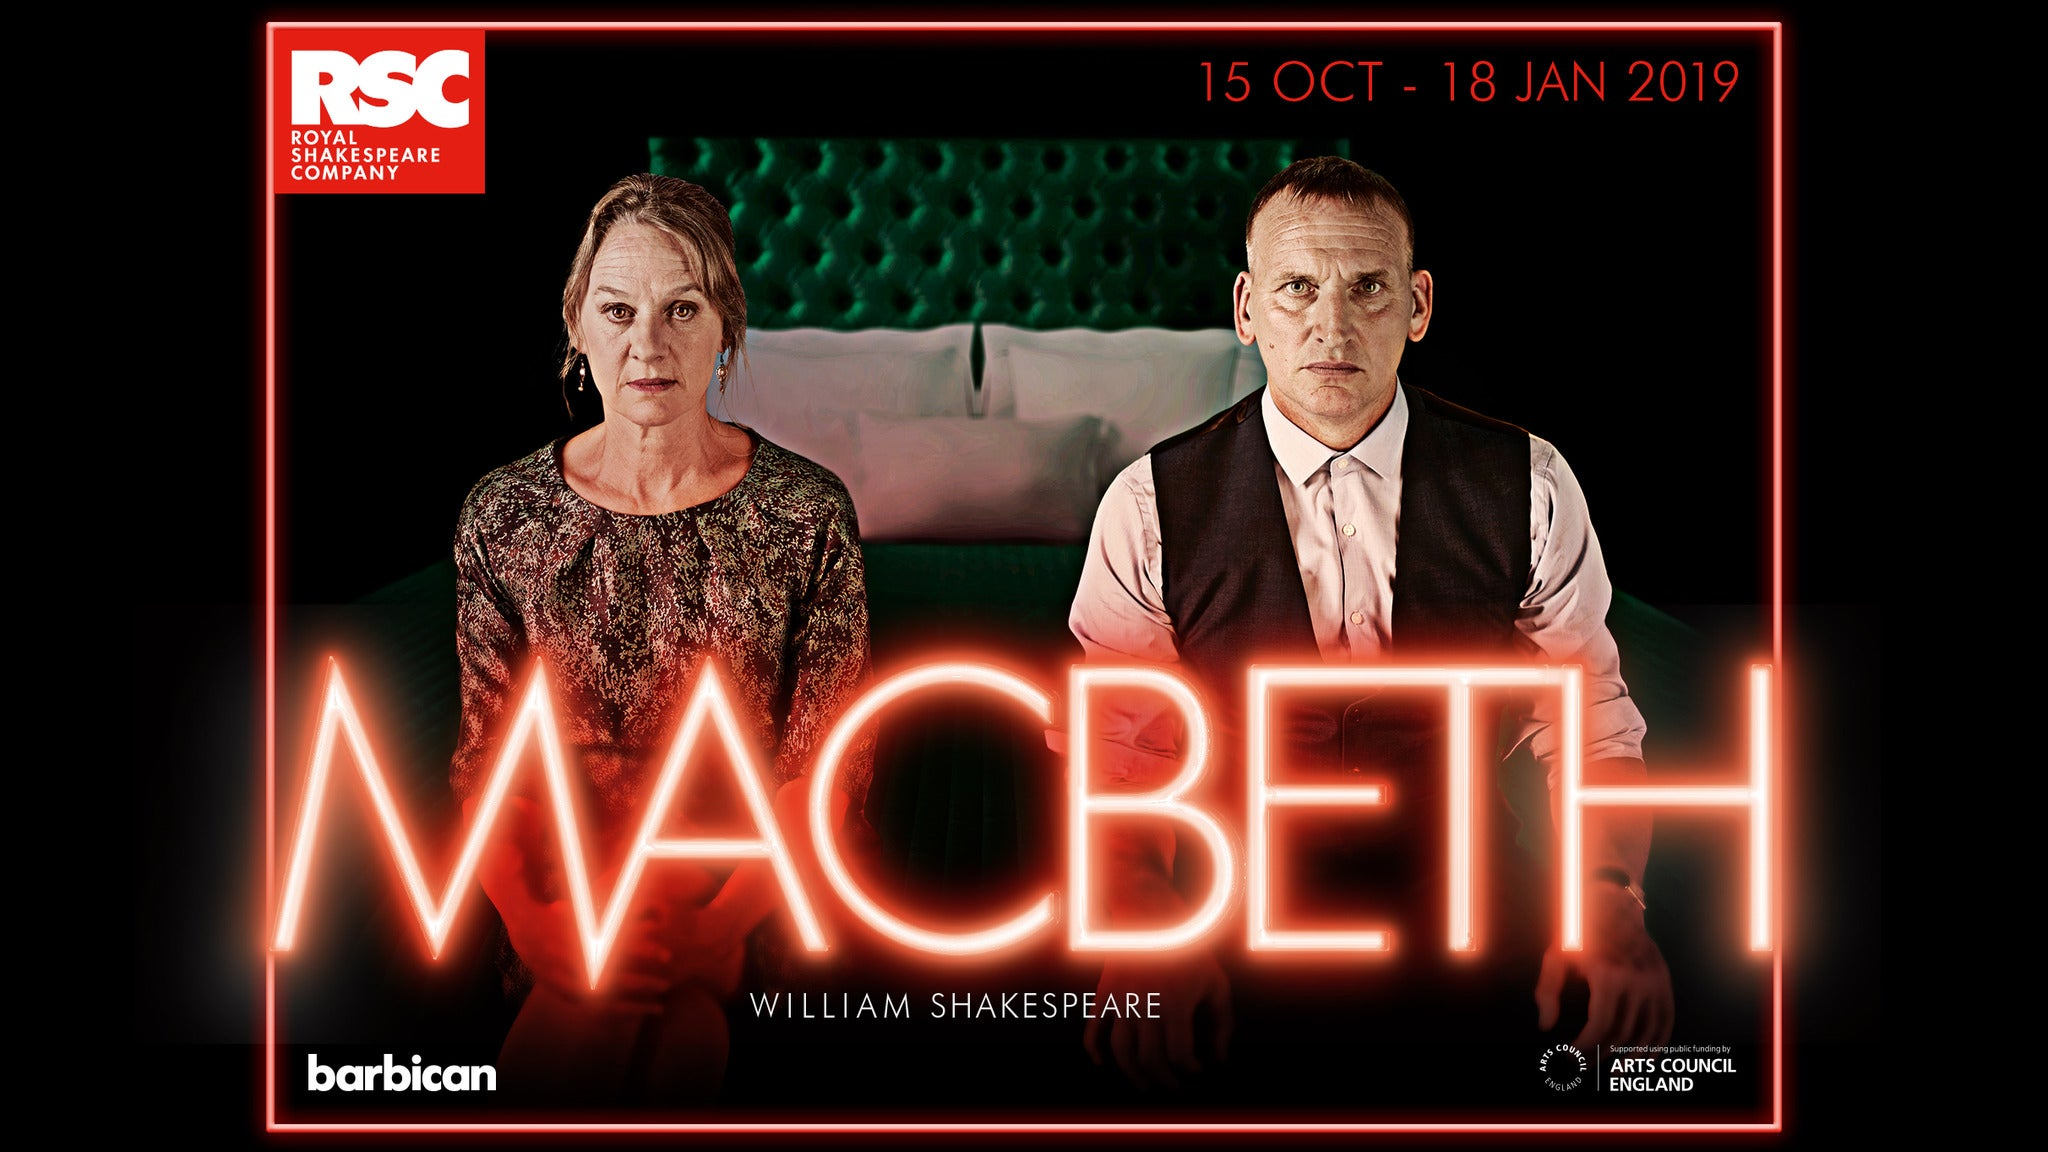 Macbeth at Reynolds Performance Hall